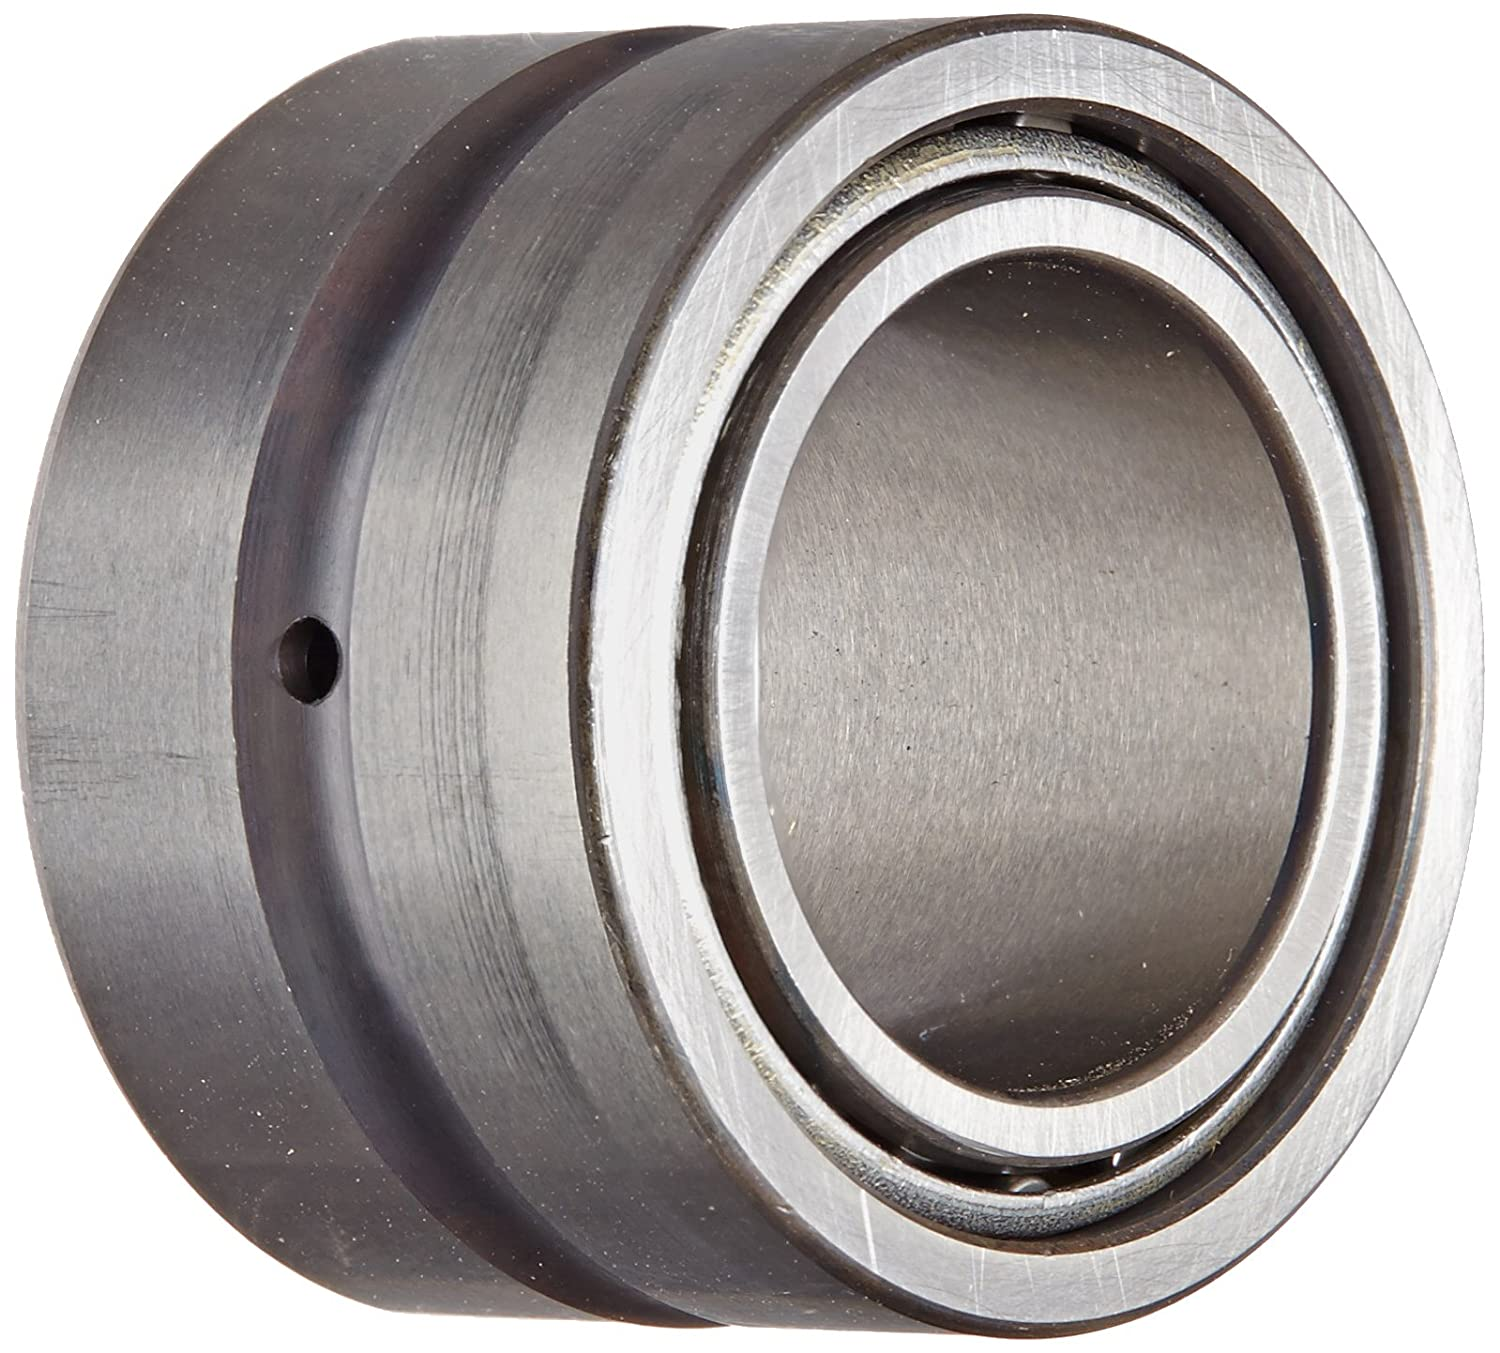 17mm Width 20mm ID Metric Open End INA NAO20X35X17 Needle Roller Bearing 18000rpm Maximum Rotational Speed With Inner Ring Steel Cage 35mm OD